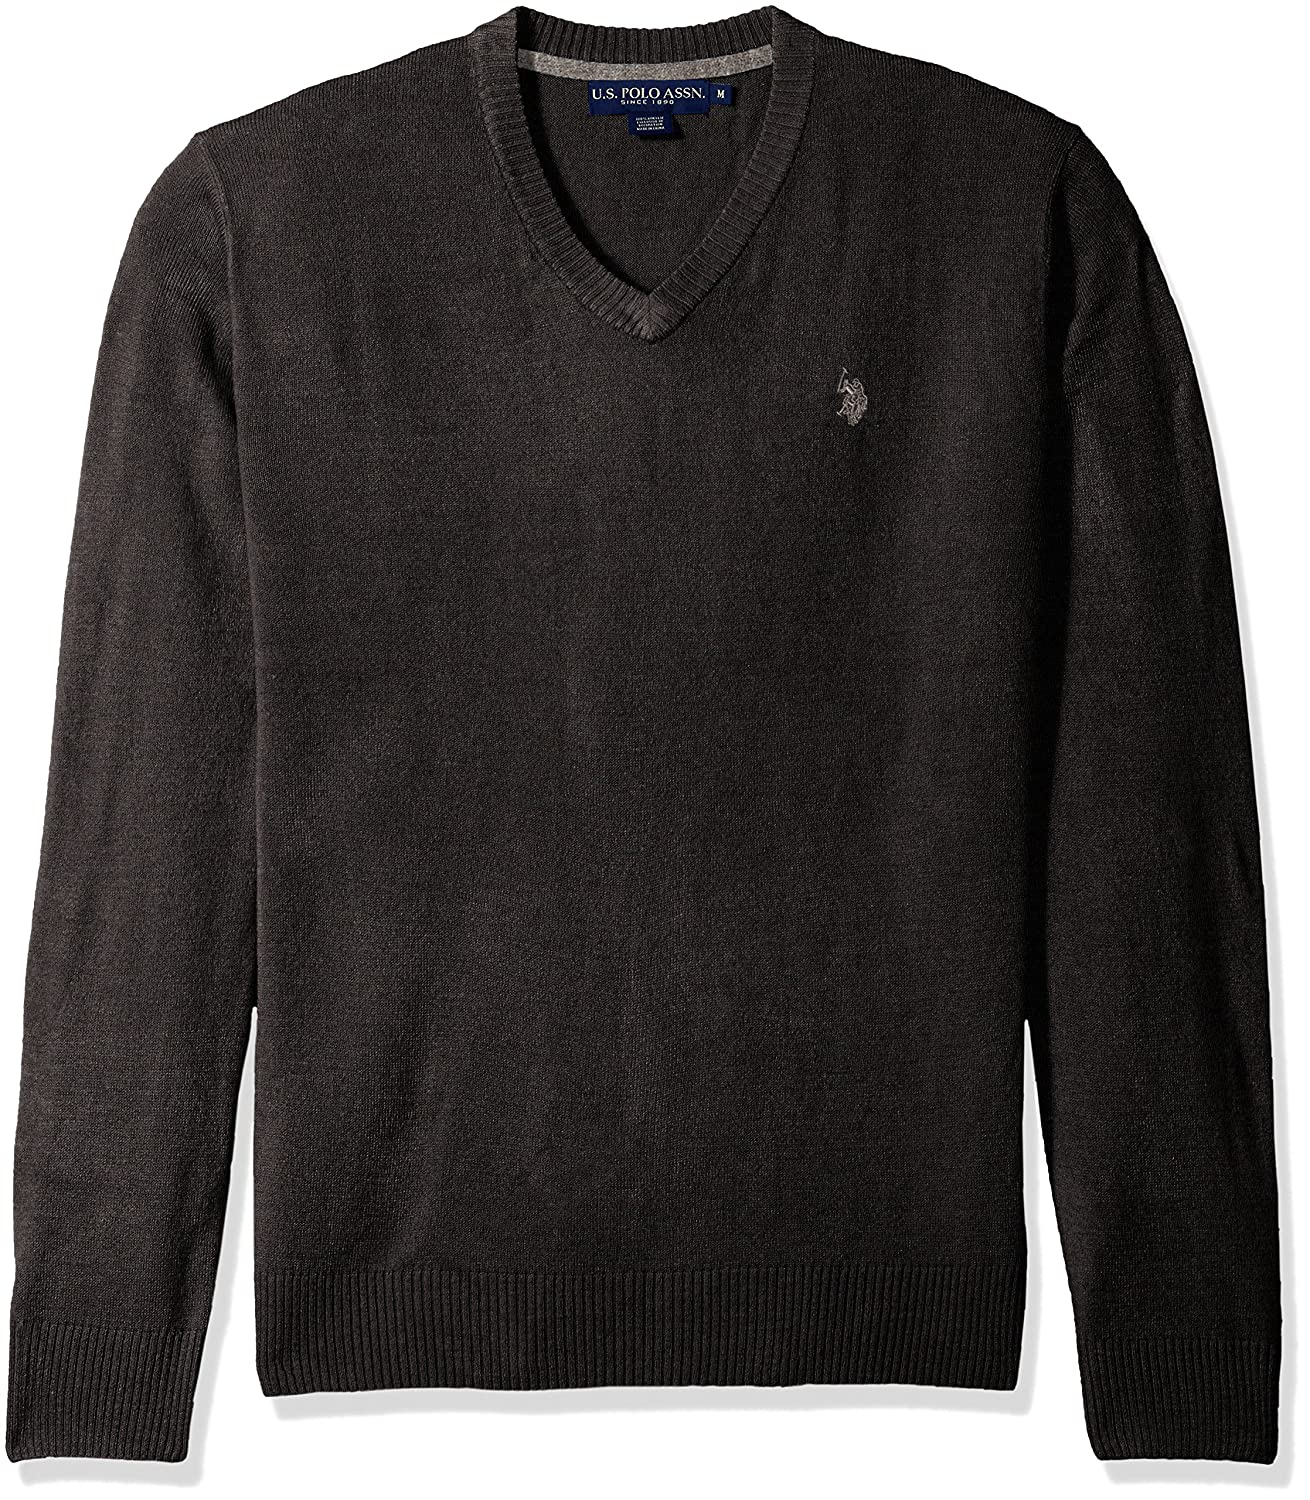 Mens Solid V-Neck Sweater ACUF7S5070 U.S Polo Assn